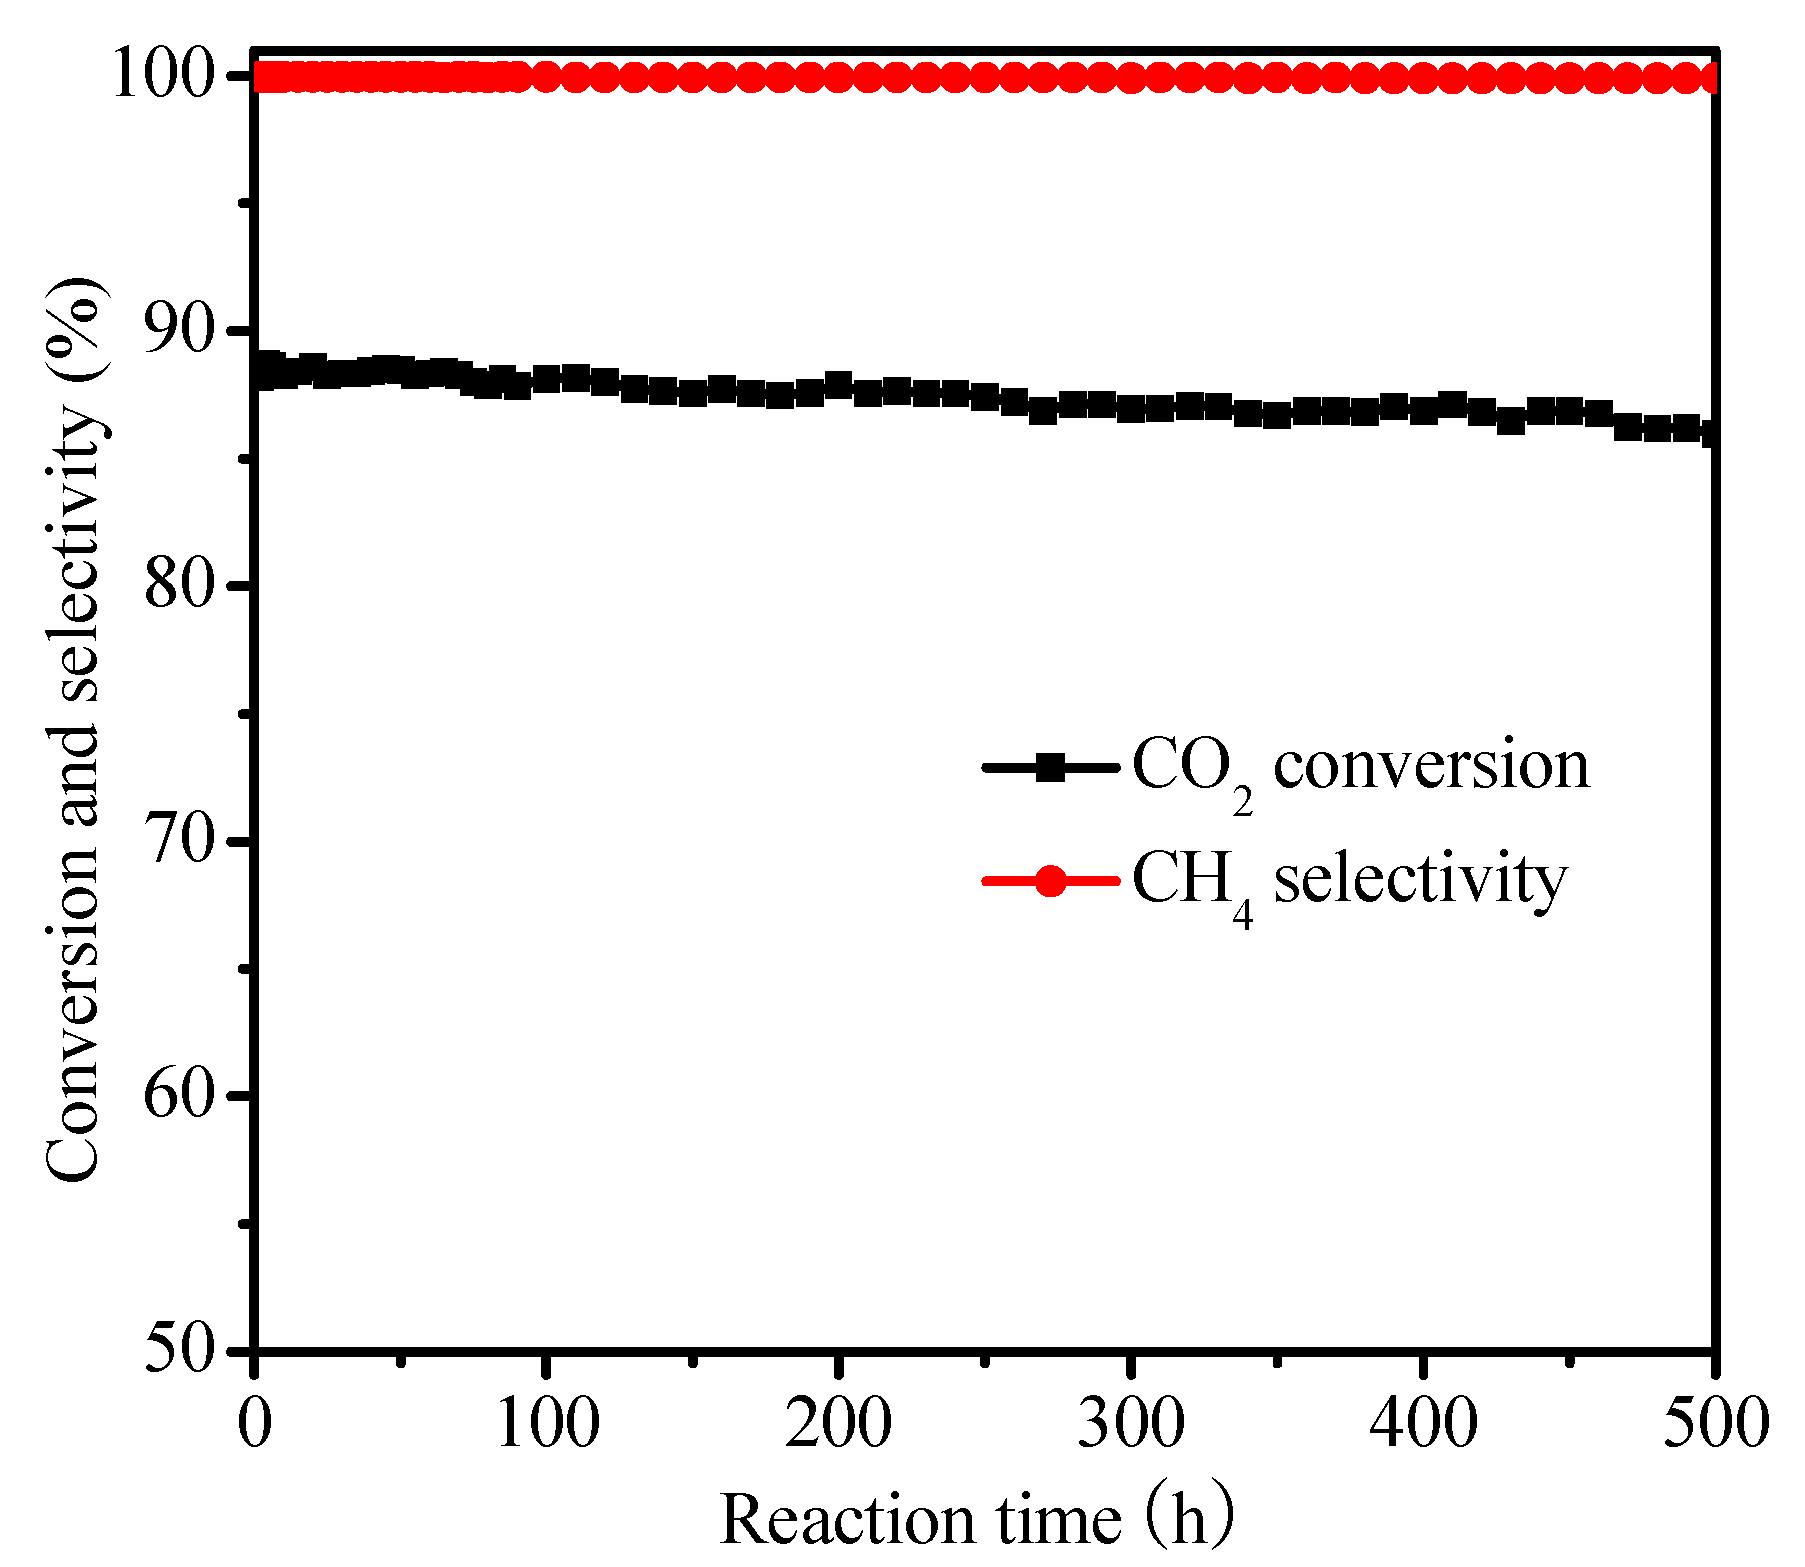 highly selective co methanation over amorphous The co methanation reaction over nickel was studied at low co concentrations and at hydrogen pressures slightly above ambient pressure the kinetics of this reaction is well described by a first-order expression with co dissociation at the nickel surface as the rate-determining step.